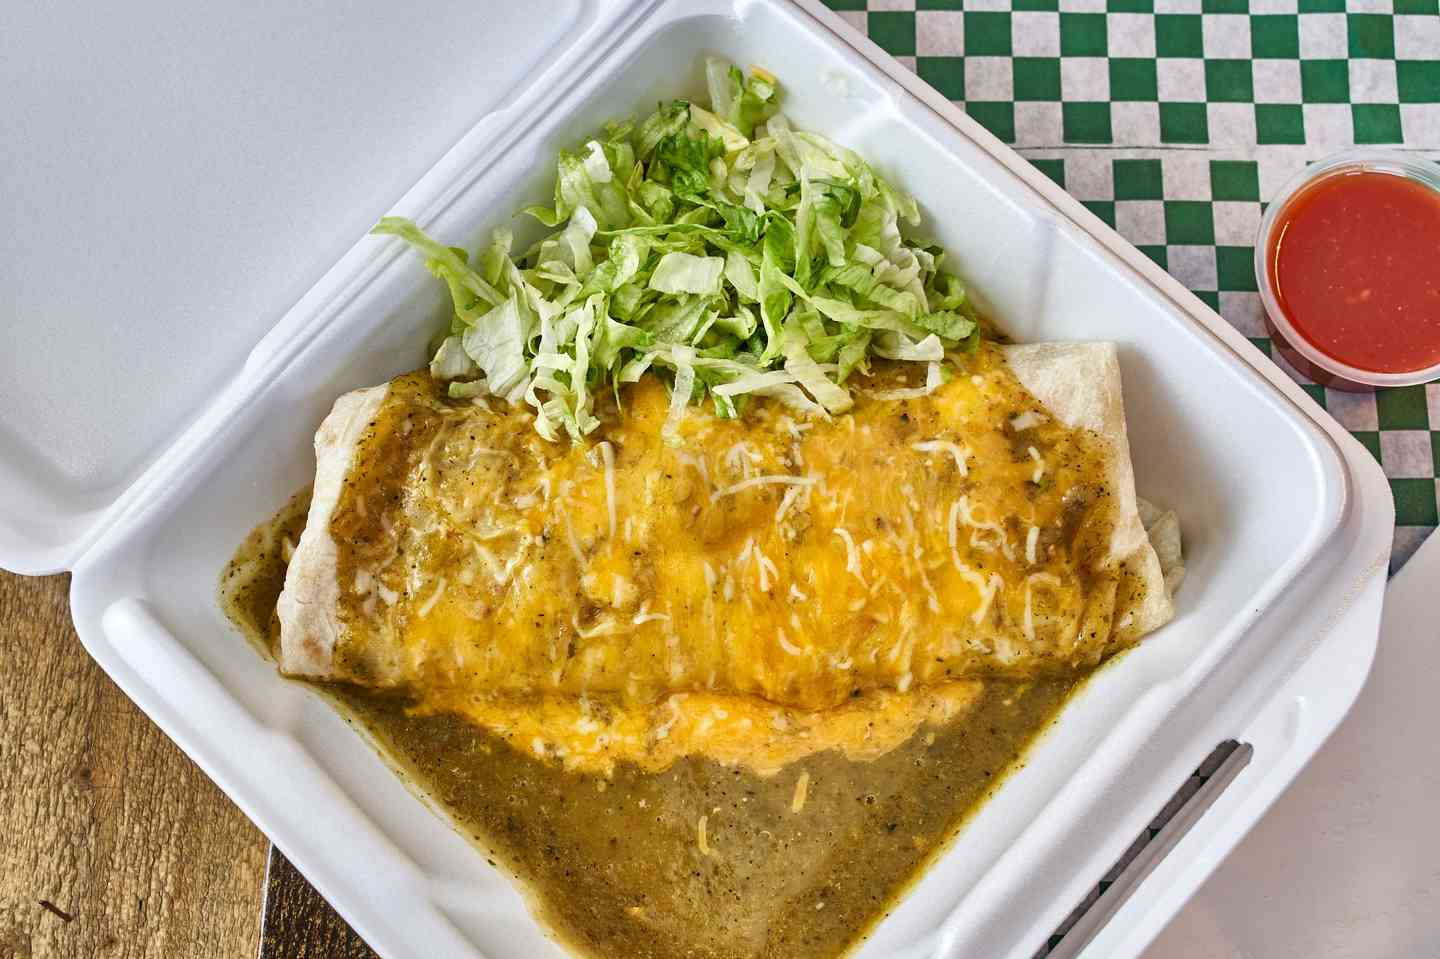 Green Chili Beef or Chicken Burro (Hot)